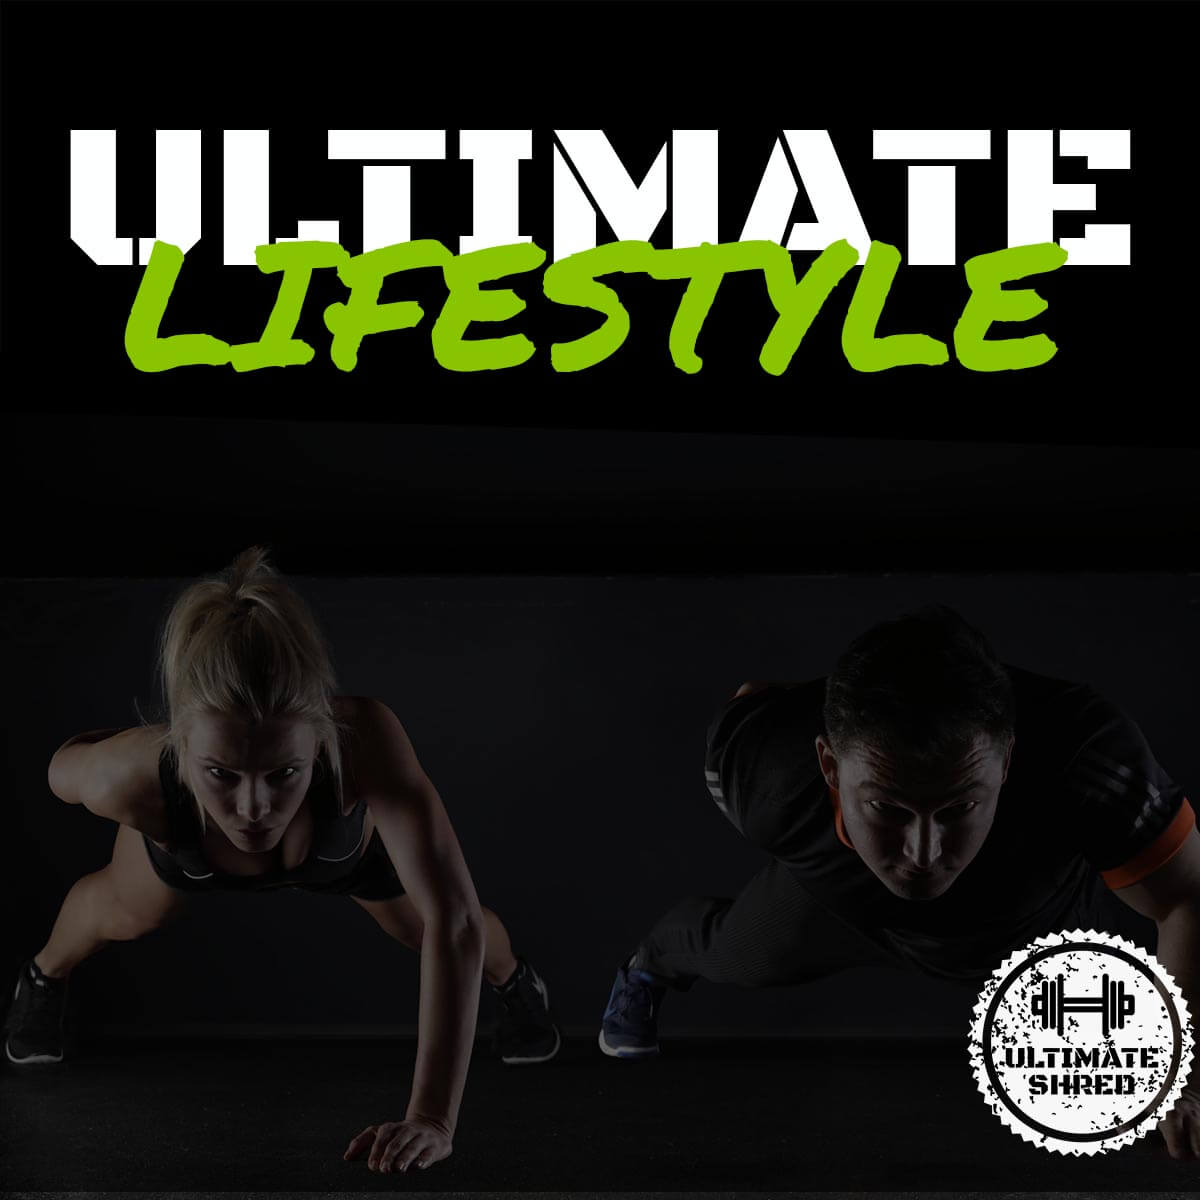 Ultimate Lifestyle